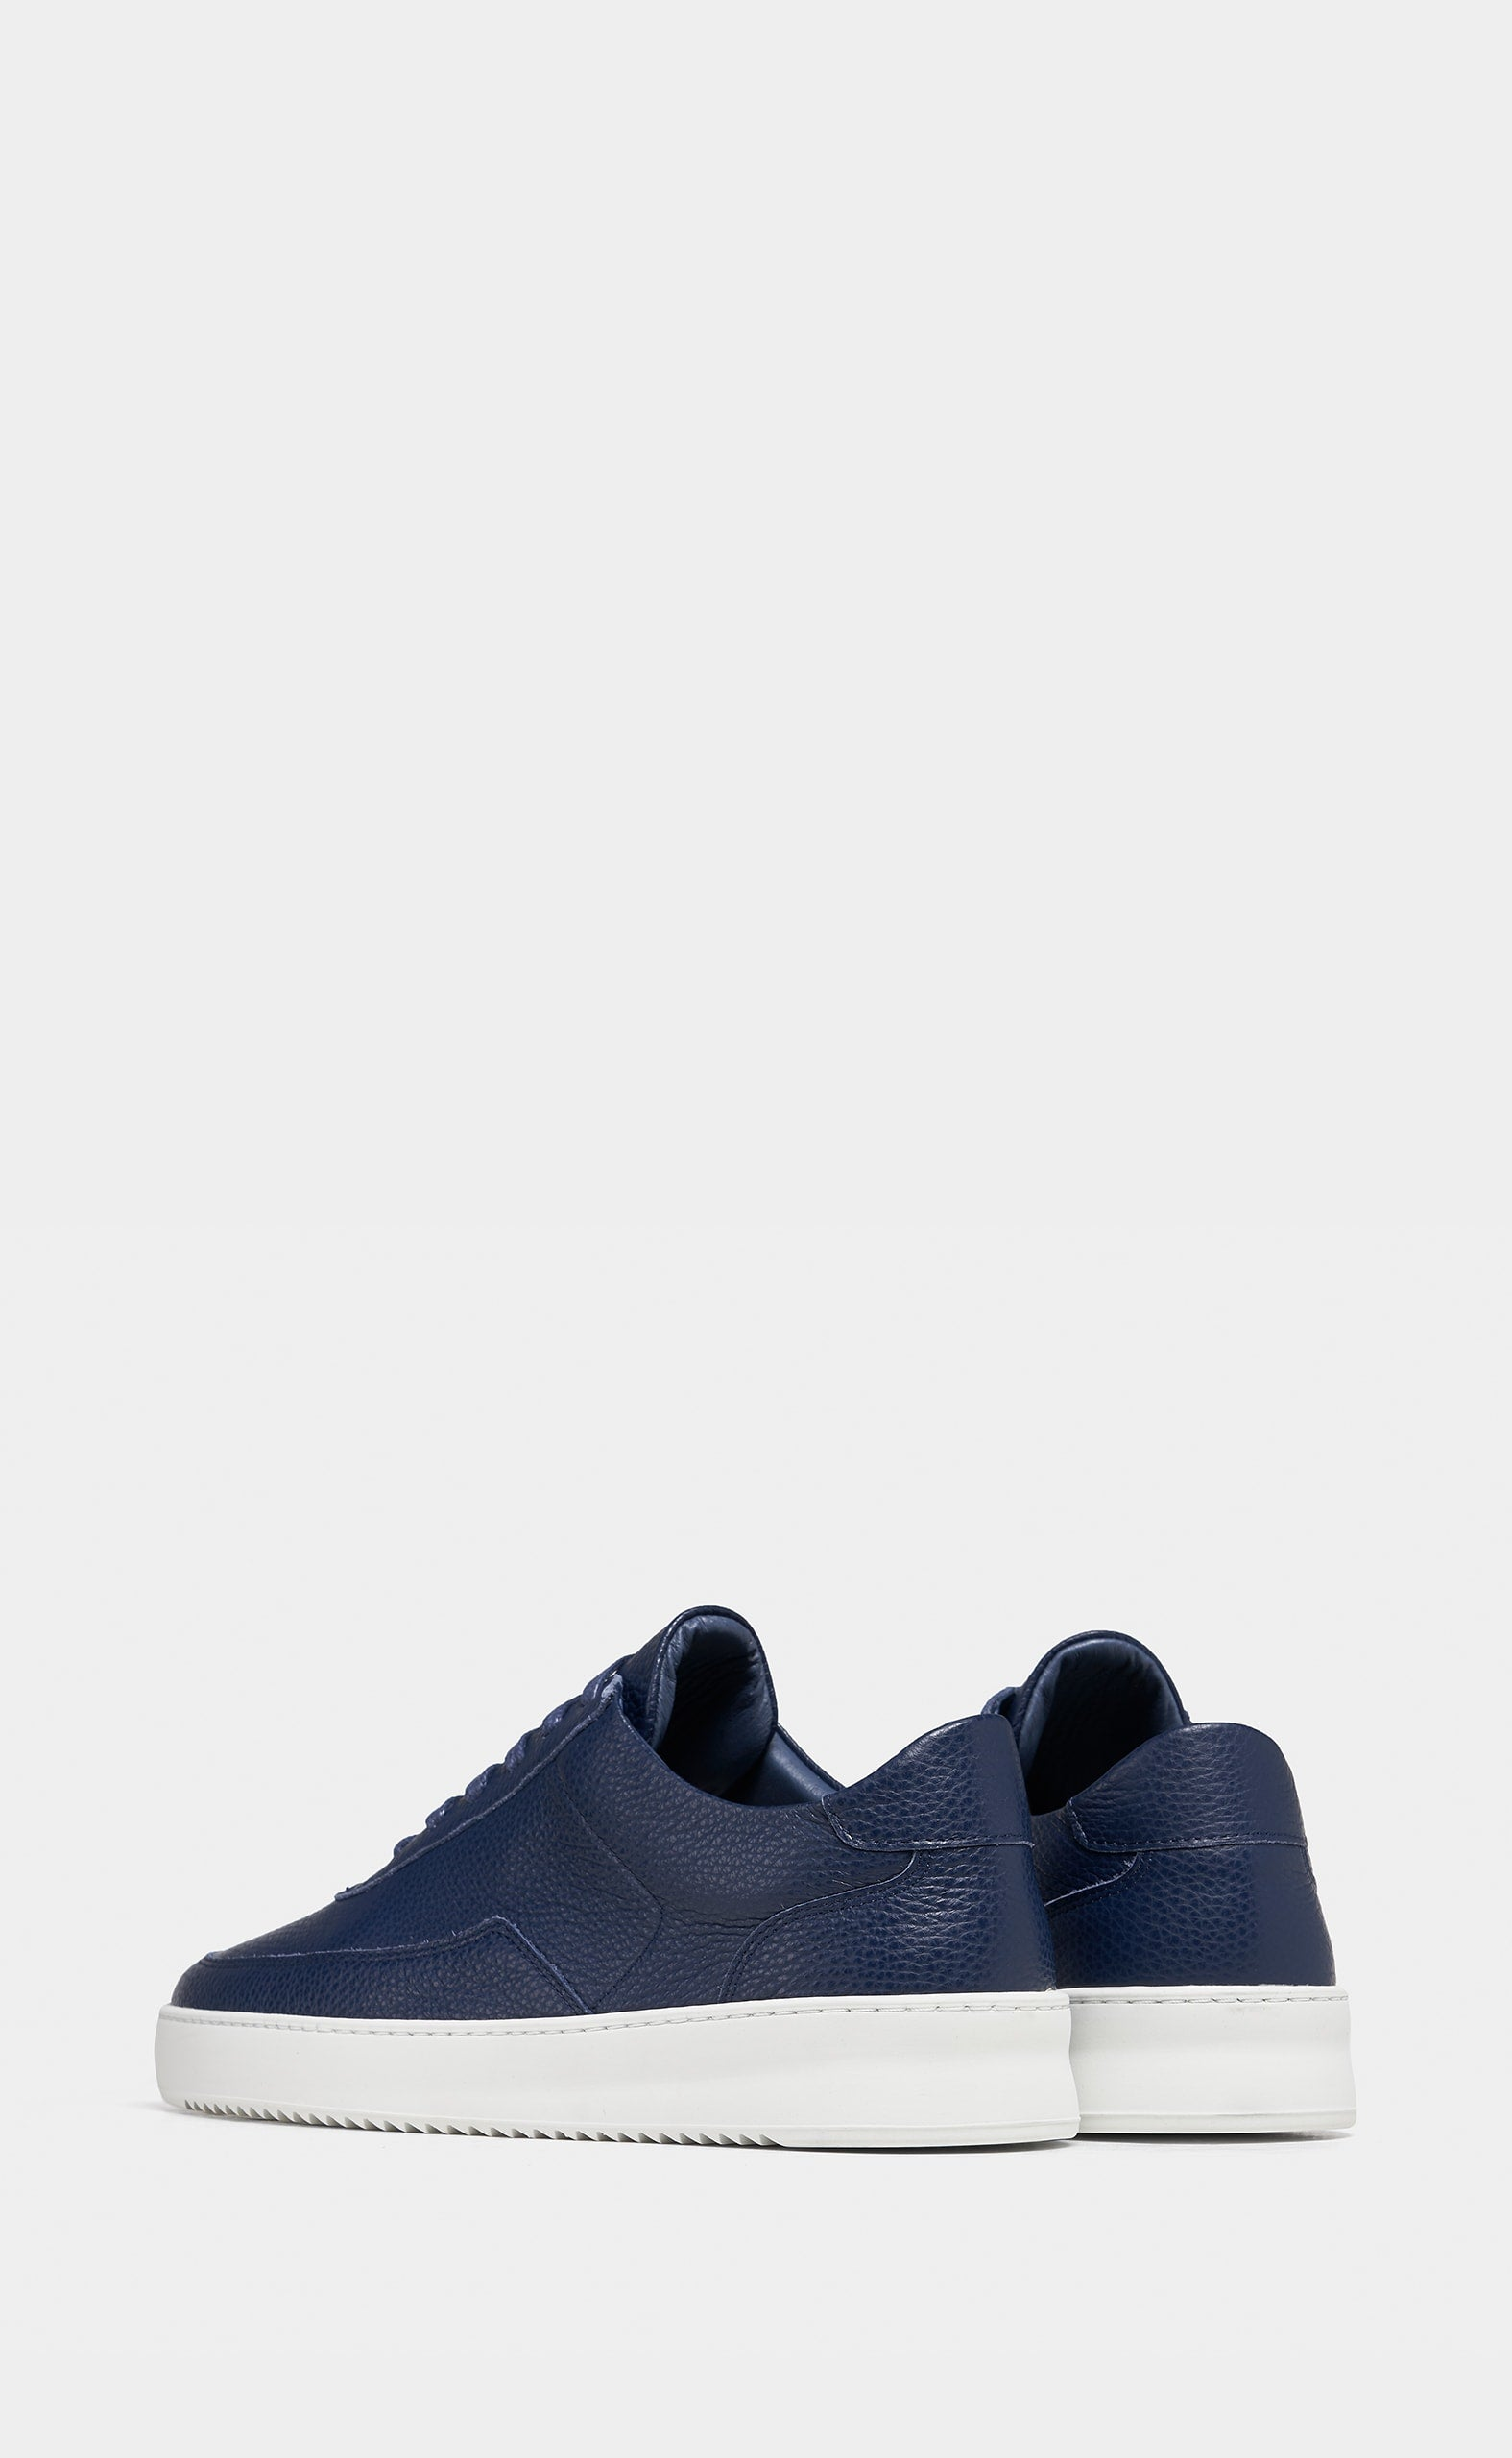 Mondo Ripple Grain Navy Blue - men